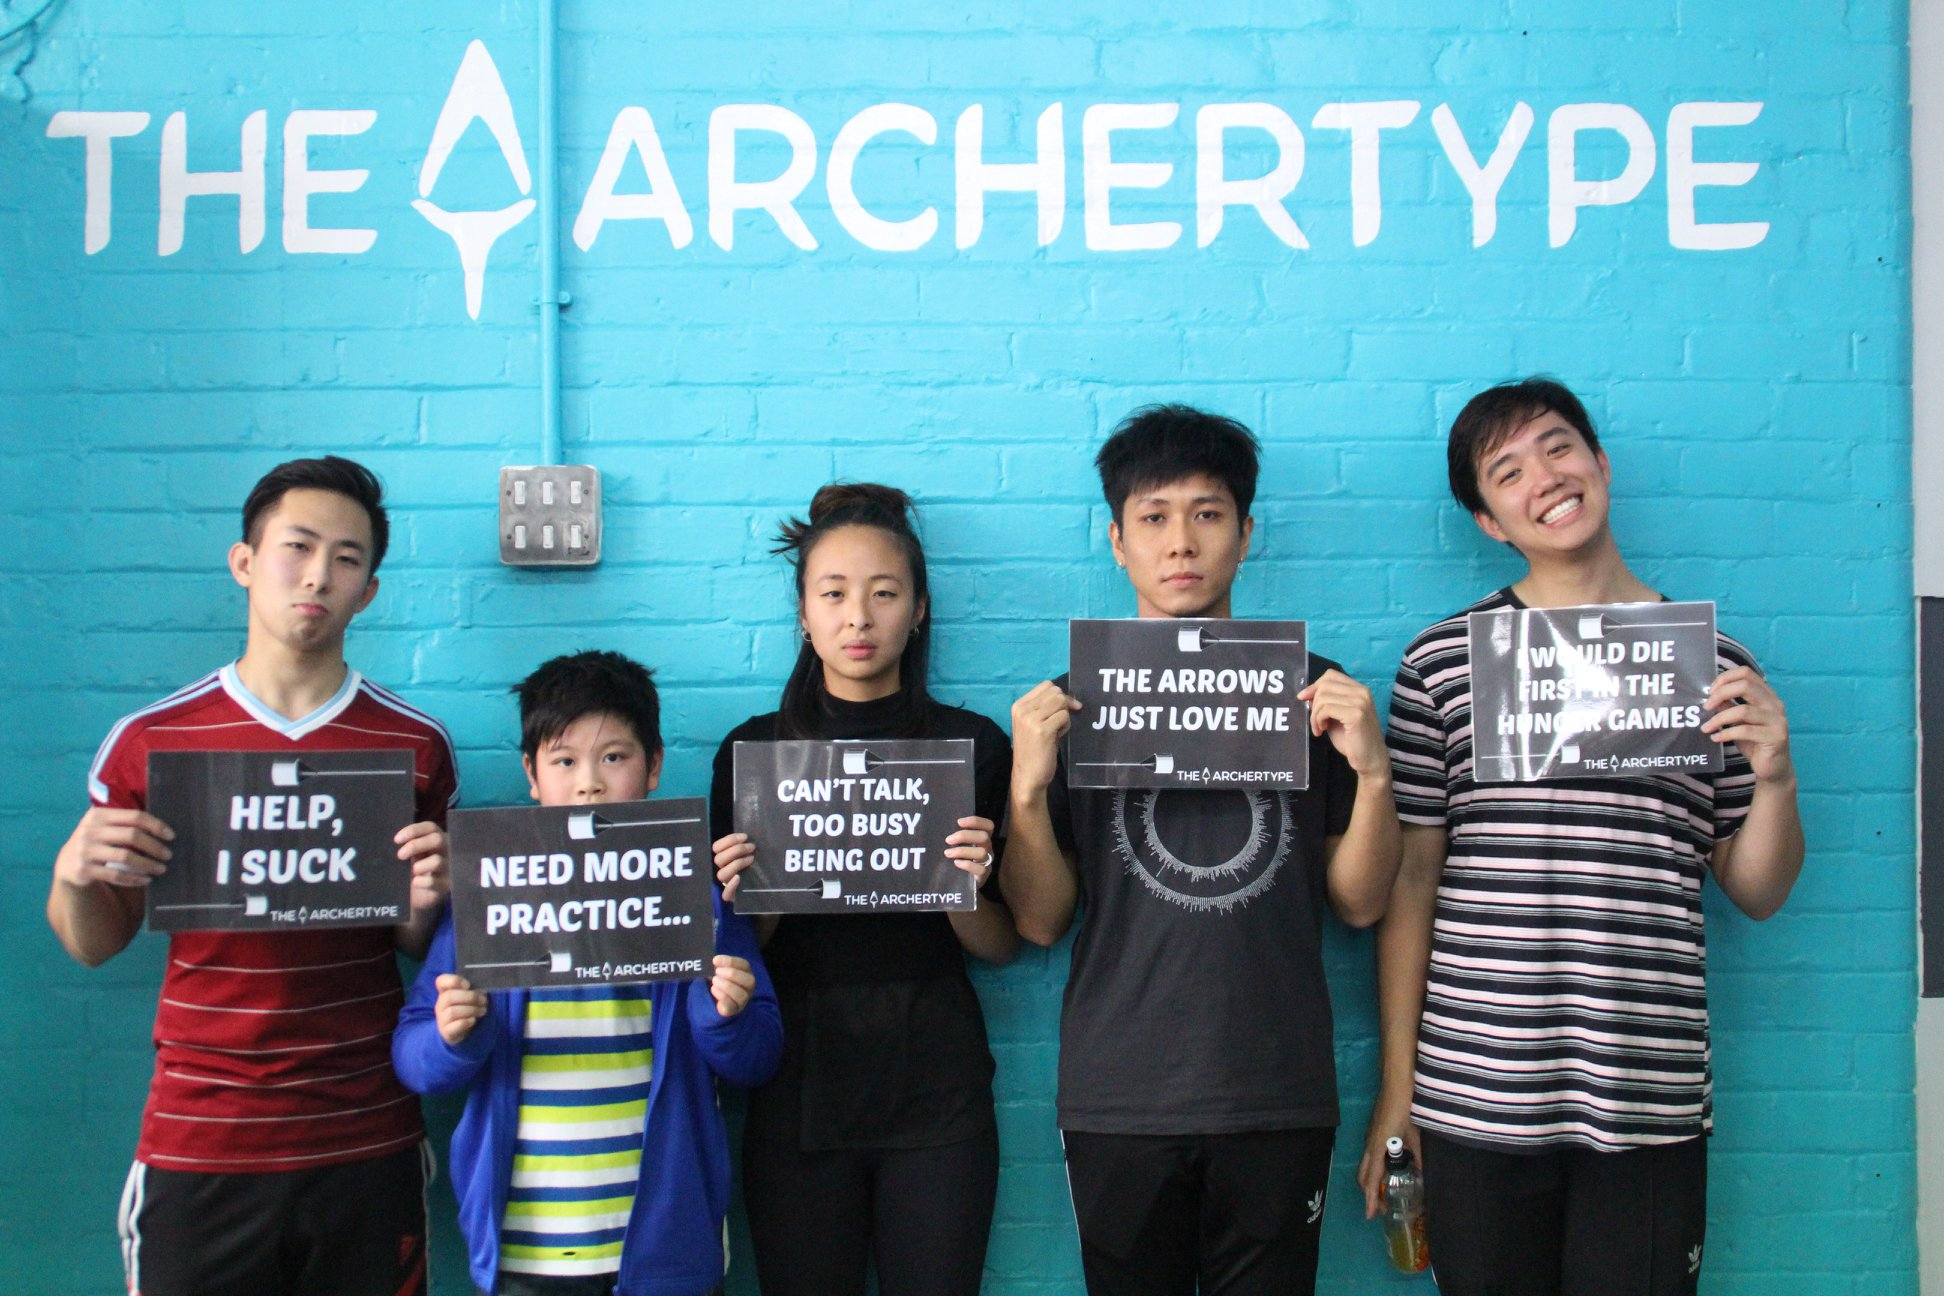 Bored of escape rooms and jumping parks then you have to try Archery Tag at The Archertype in Manchester